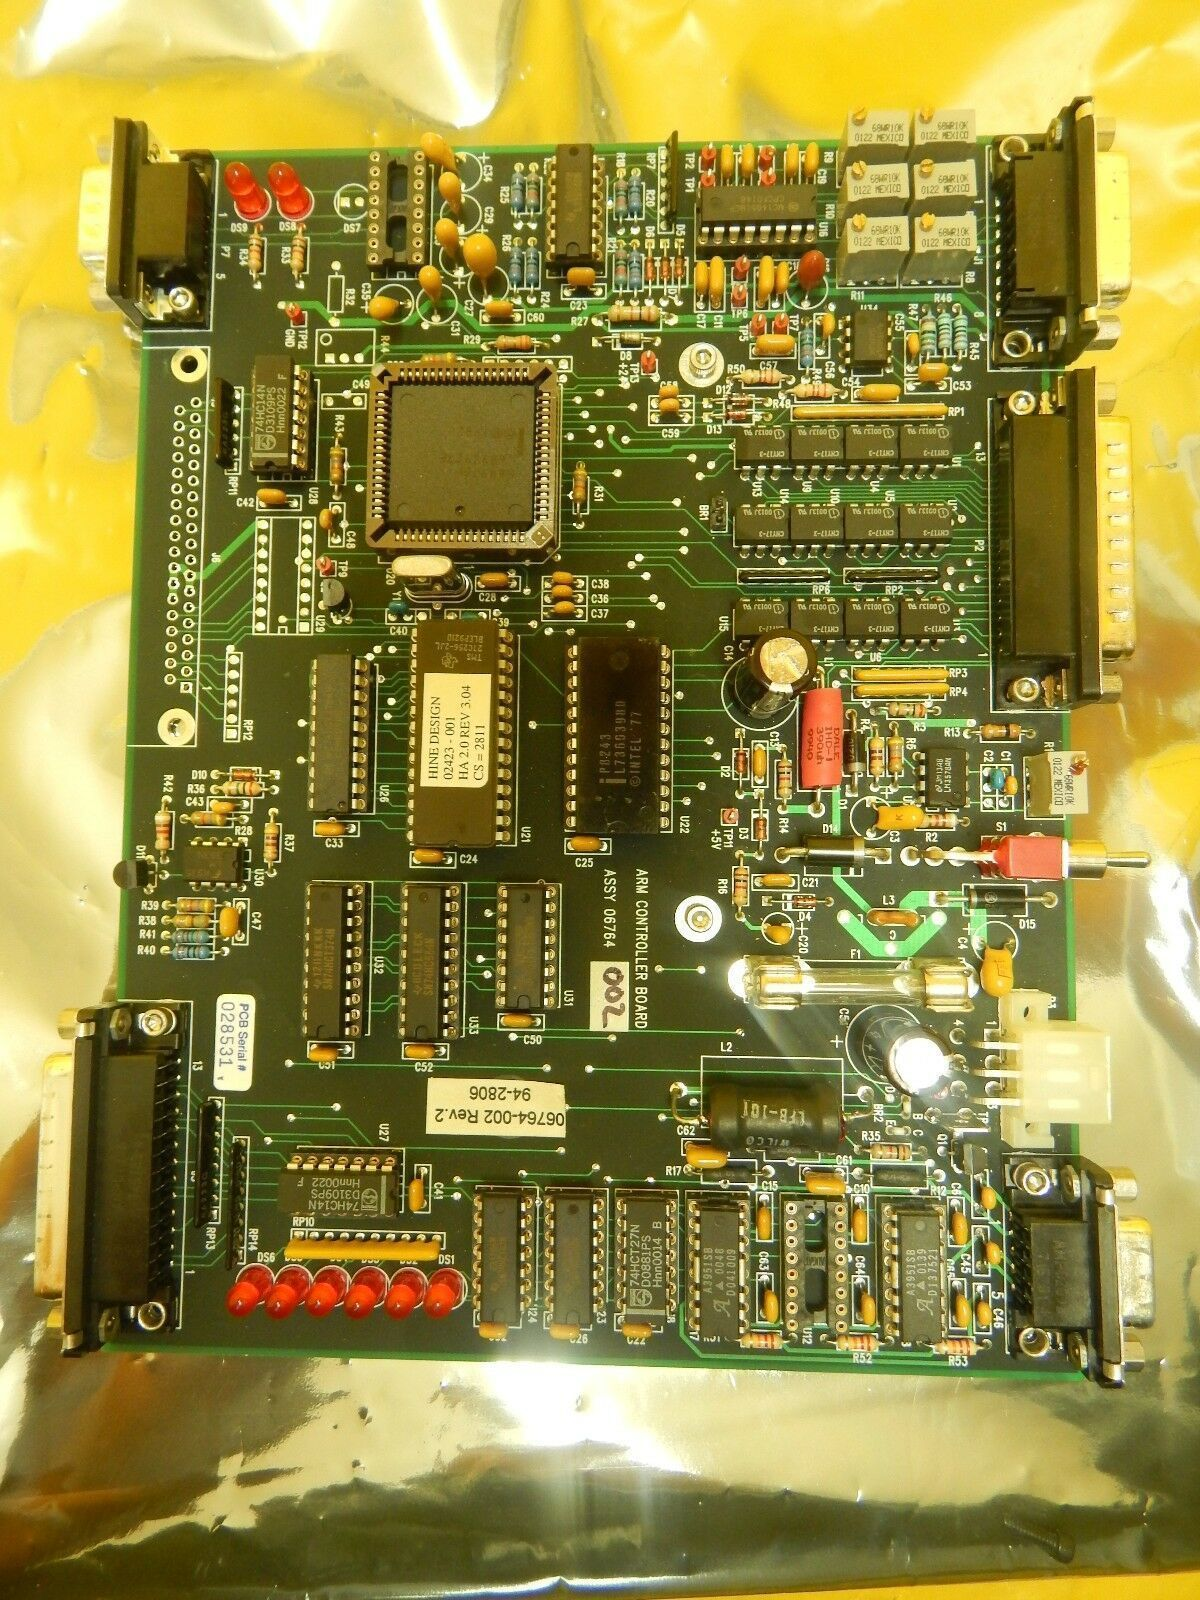 Hine Design 02423-001 Arm Control Board PCB 06764-002 GaSonics A-2000LL Used